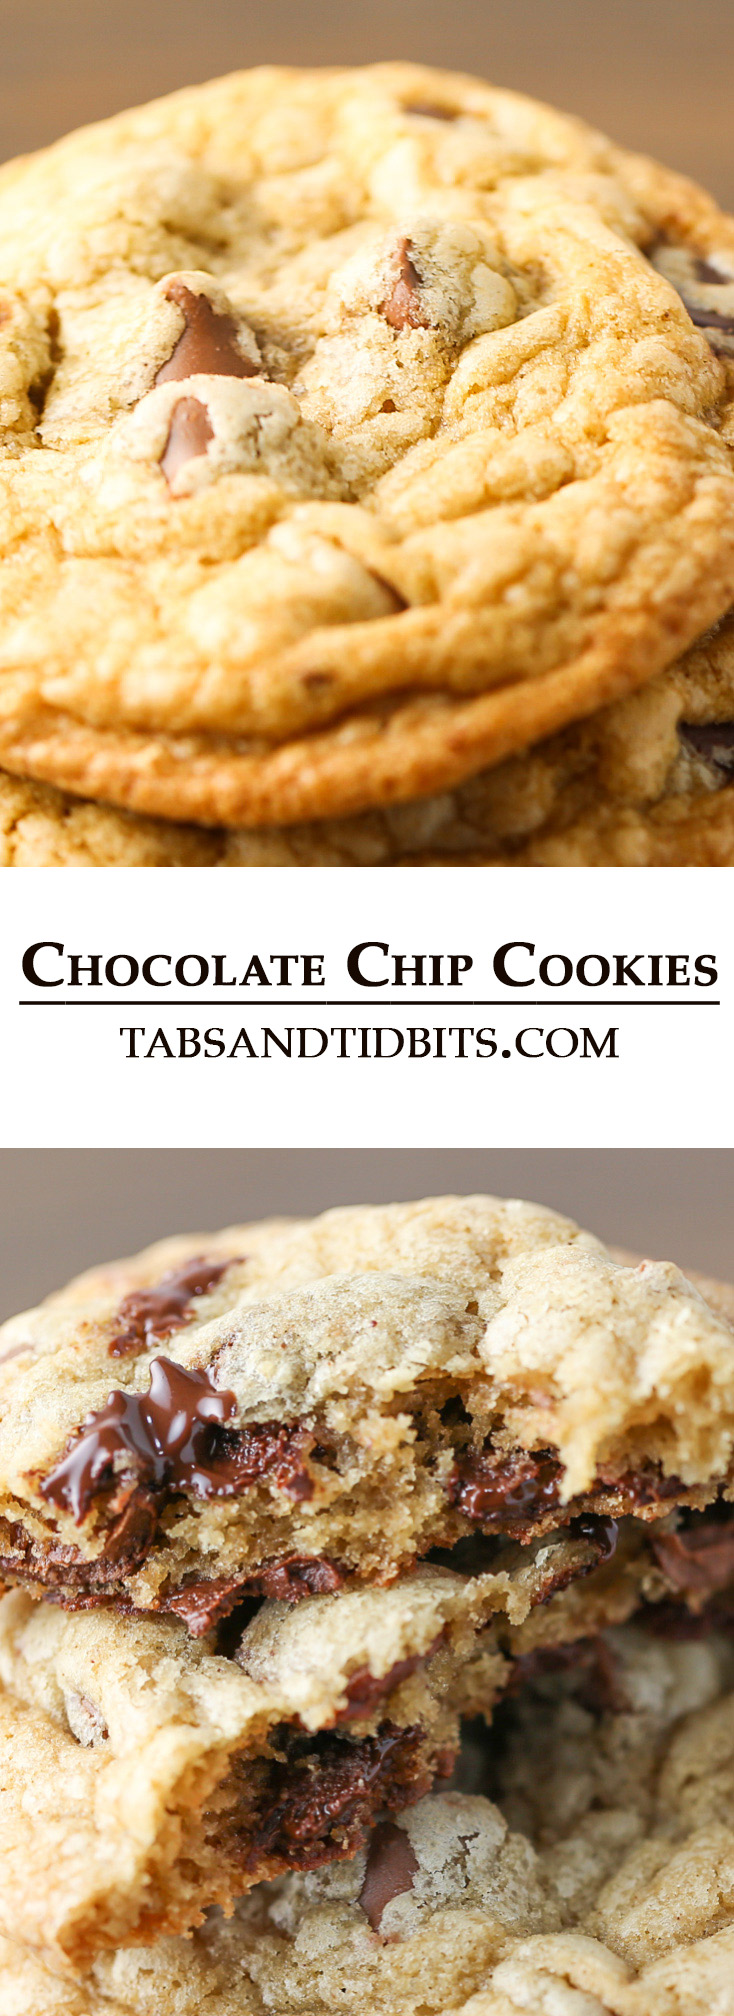 These ChocolateChip Cookies deliver on the moist and chewy interior and buttery crisp edges and loaded with rich chocolate!